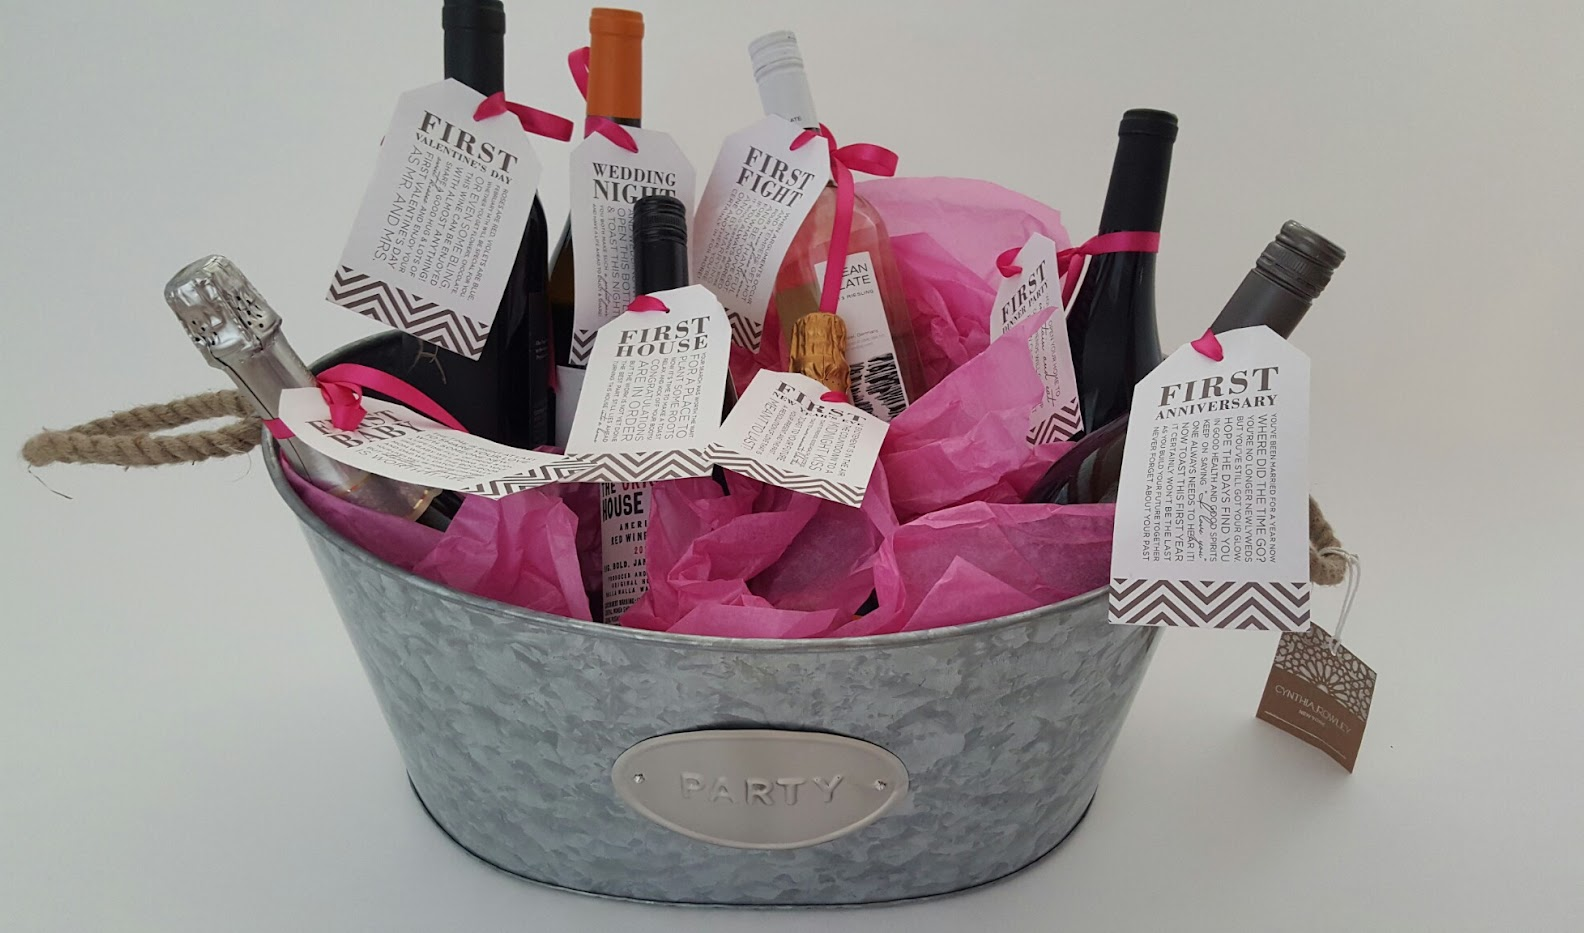 Bridal Shower Gift Basket Ideas For Bride : Bridal Shower Gift DIY to Try: A Basket of ?Firsts? for the Bride ...